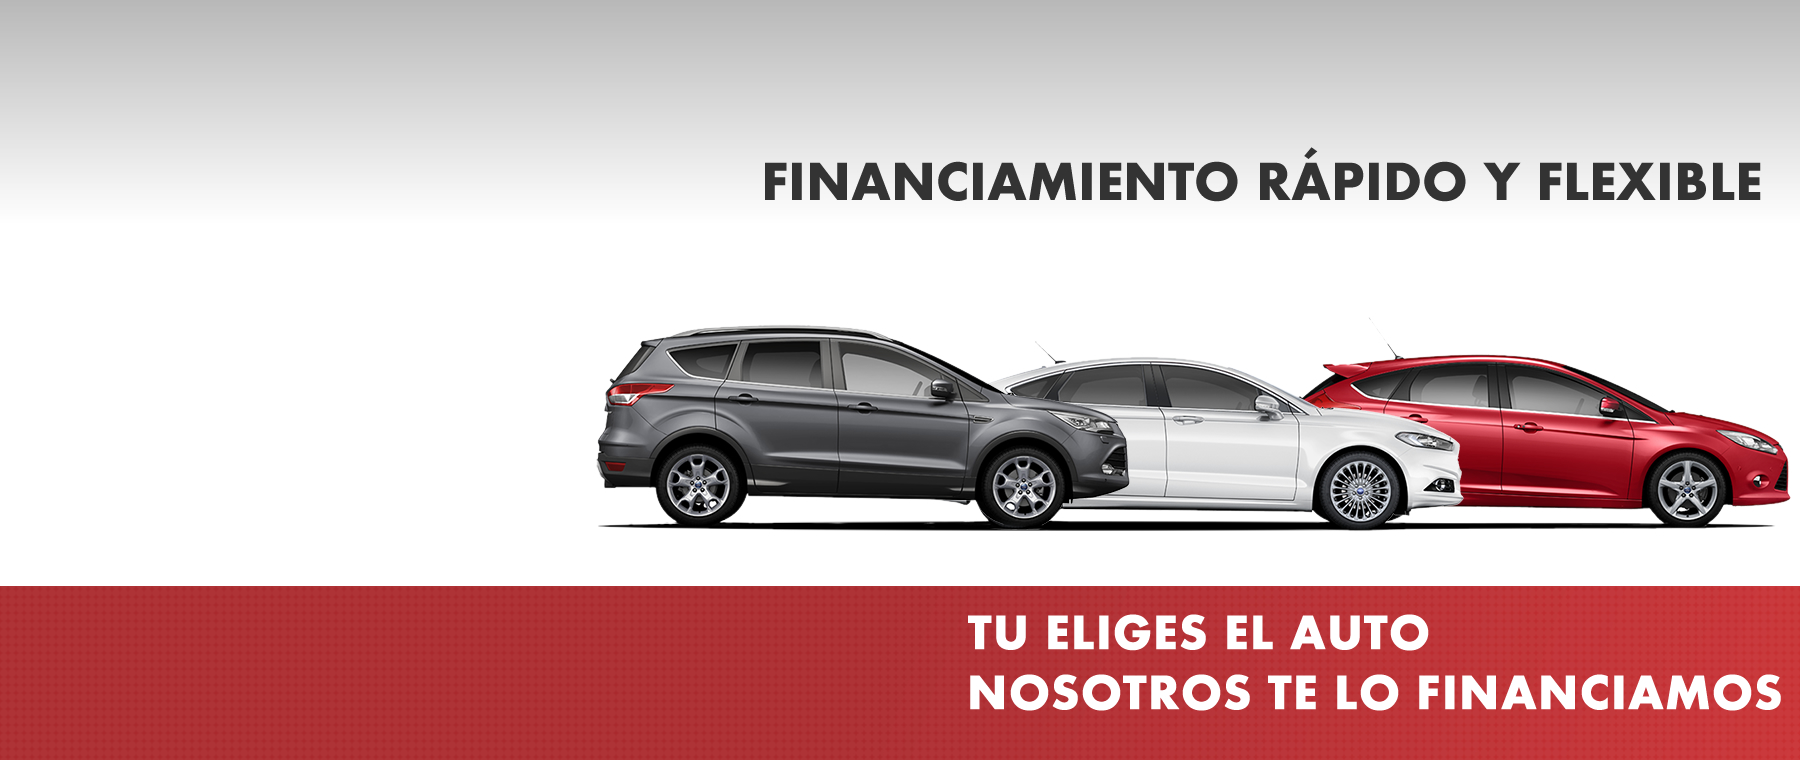 Financiamiento Autos Salas